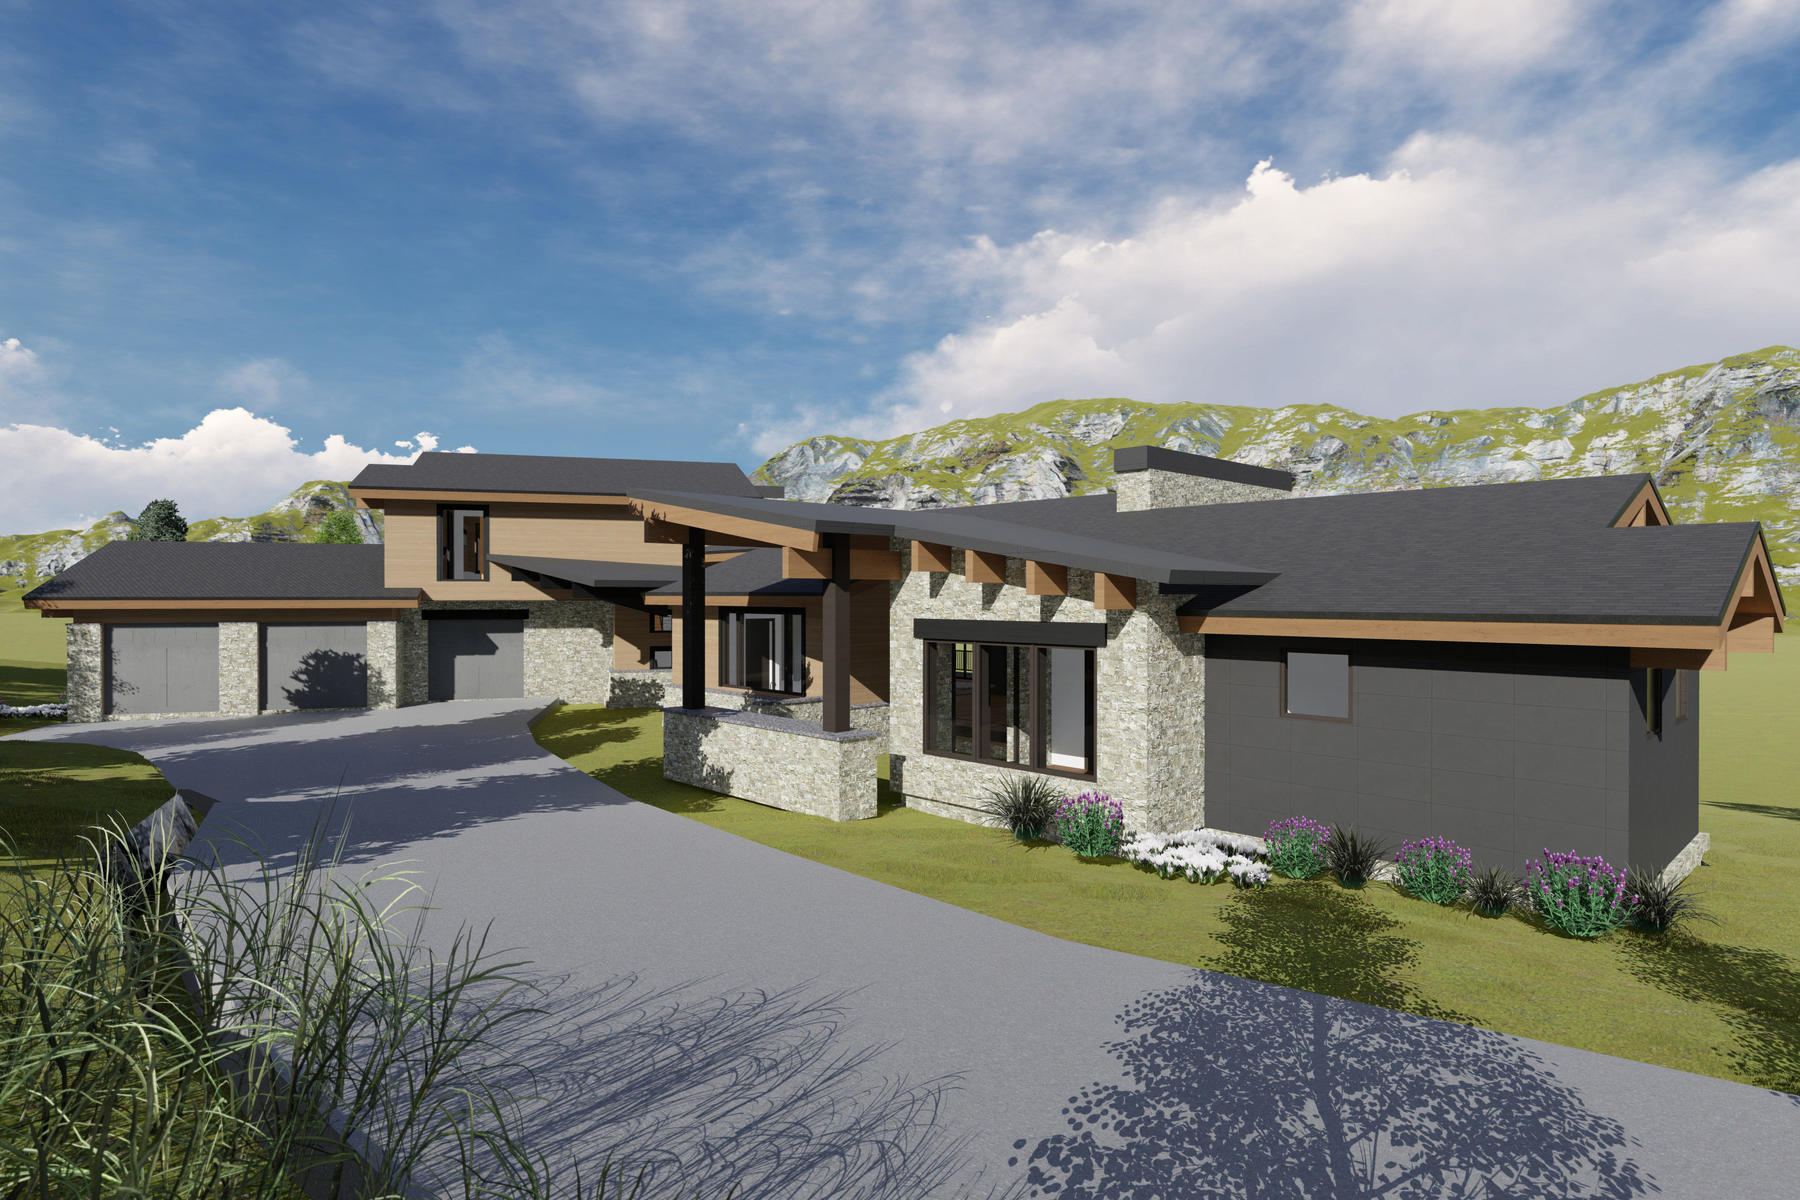 Single Family Homes for Active at Spectacular Ski-In/Ski-Out Contemporary Home with Unobstructed Views 28 Red Cloud Trail Park City, Utah 84060 United States